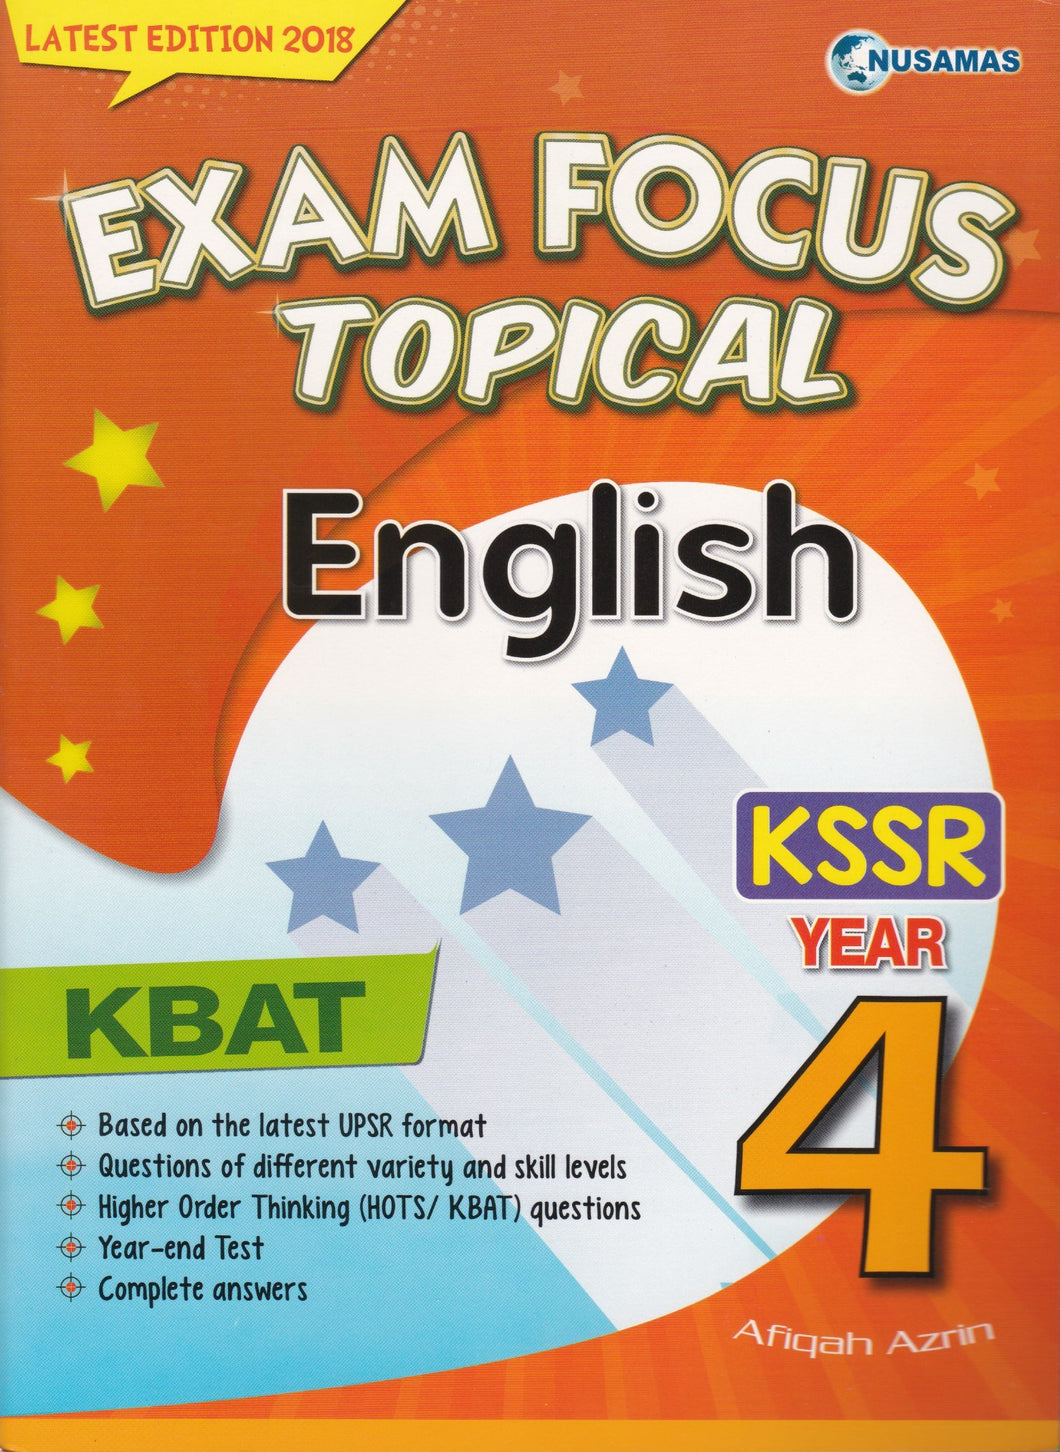 Nusamas-Exam Focus Topical: English Year 4-9789674369798-BukuDBP.com